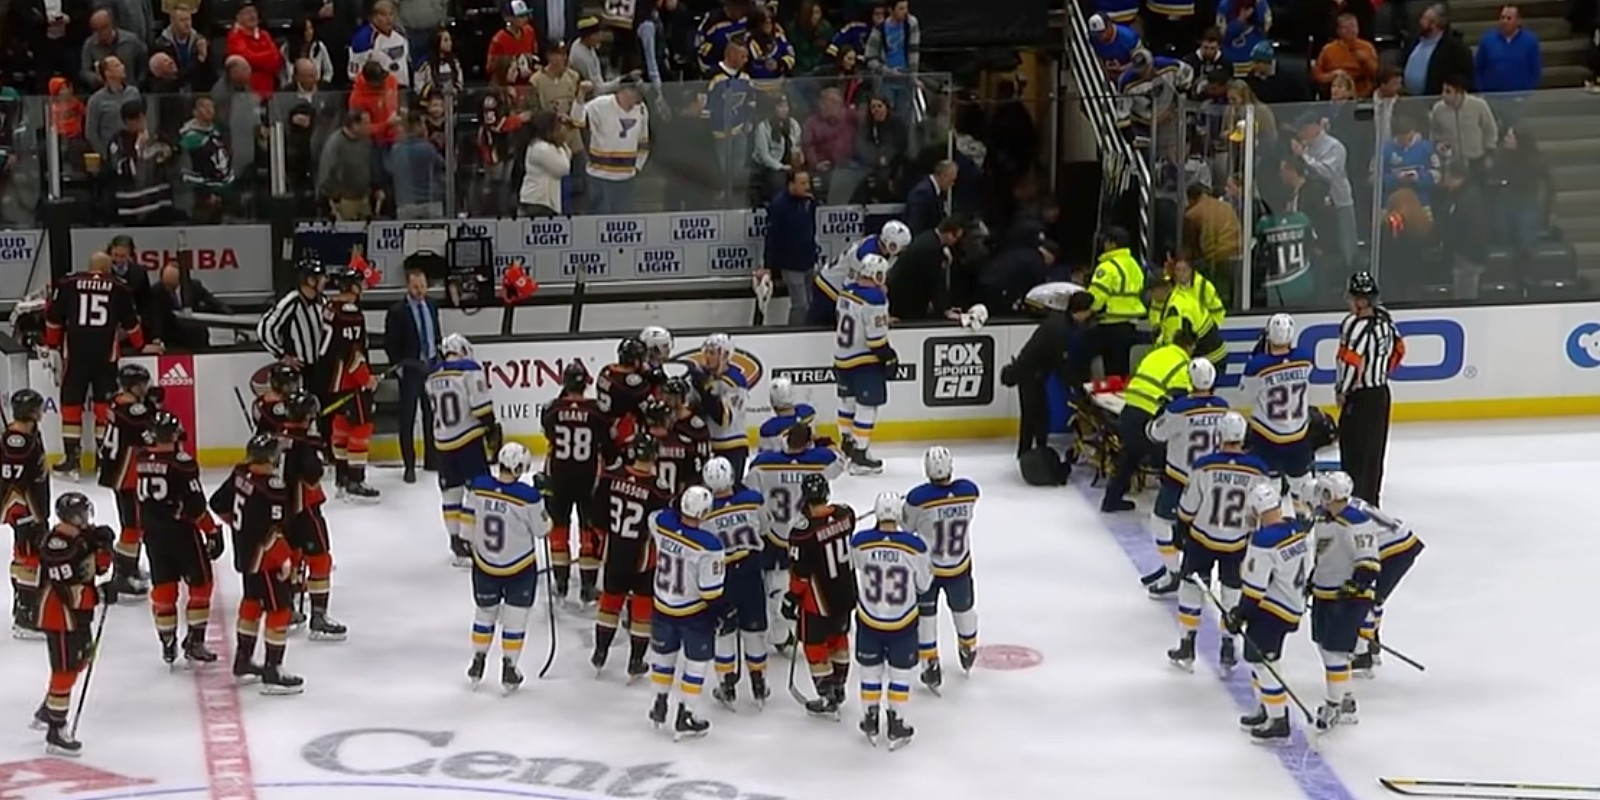 The immediate medical attention St. Louis Blues defenceman Jay Bouwmeester received after collapsing on the bench during a game Feb. 11 likely saved his life, according to a U of A expert in sports medicine. (Image: Sportsnet via YouTube)